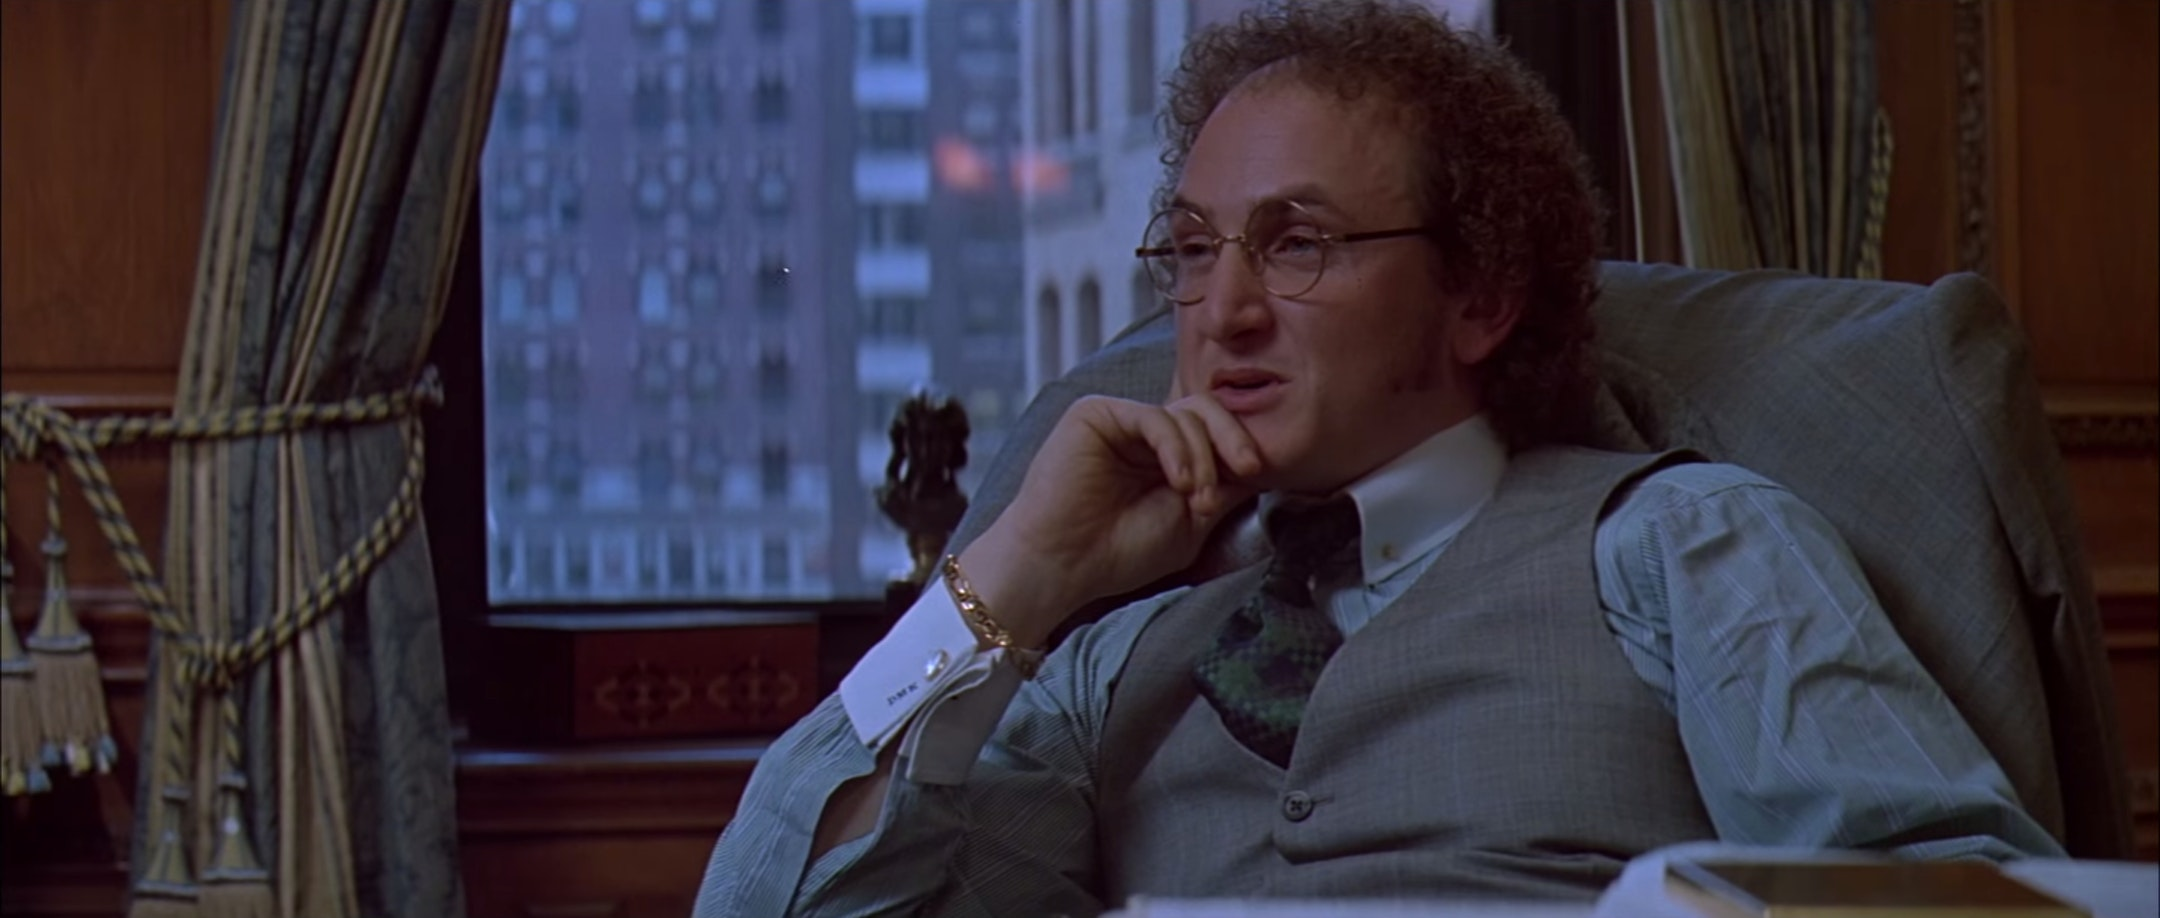 "Sean Penn in 'Carlito's Way' was a physical inspiration for Steve Lemme's ""Fink"" in 'Beerfest.'"